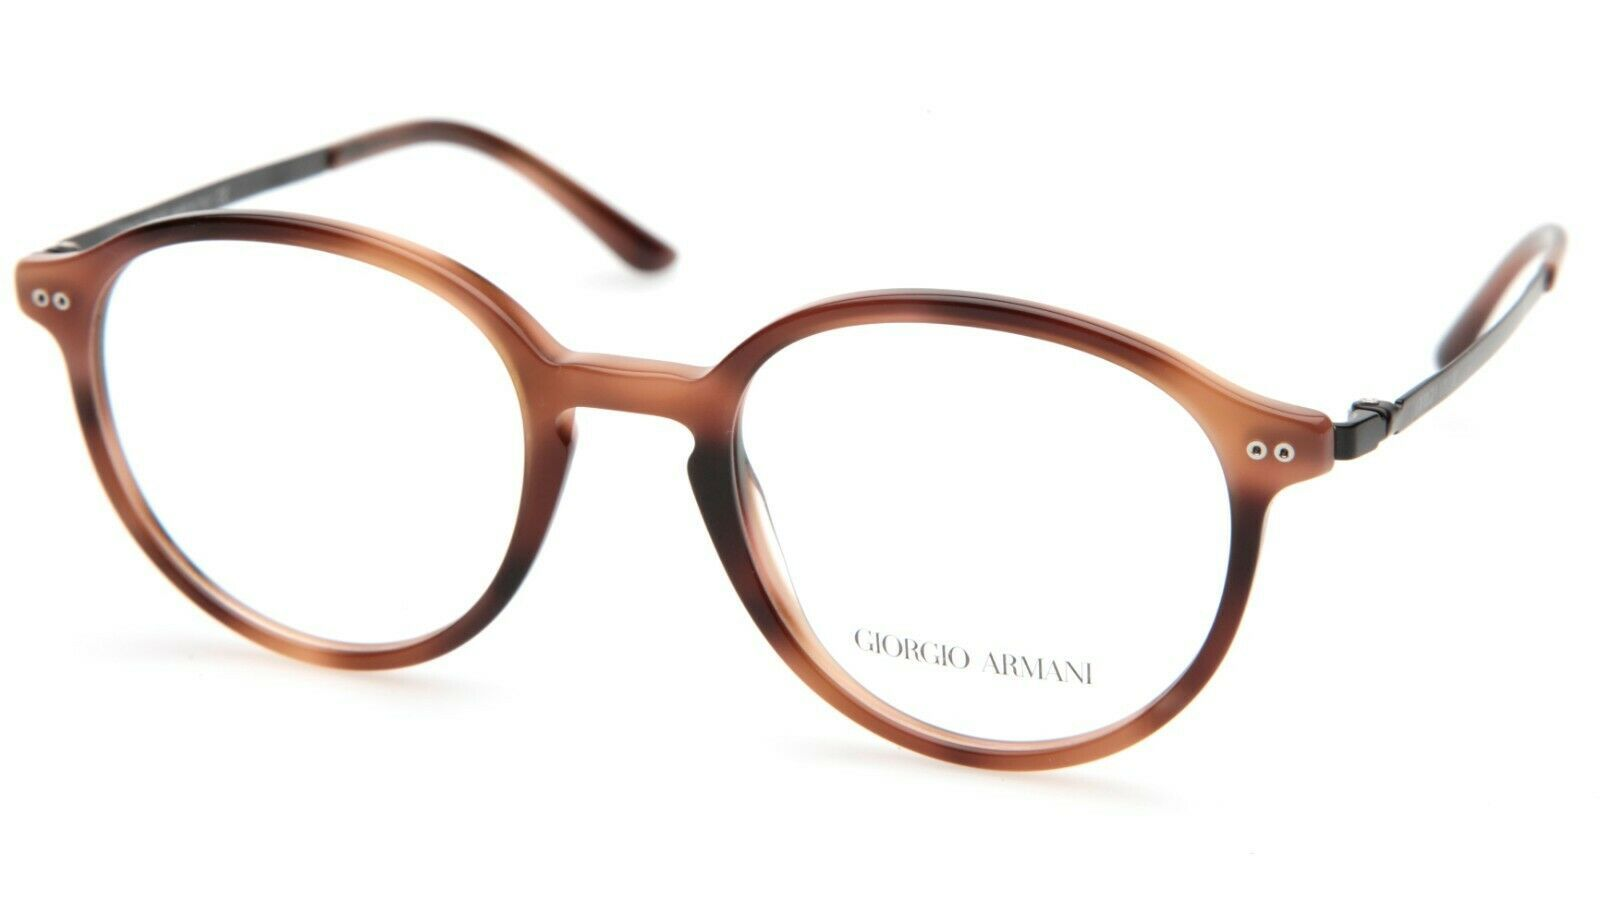 Primary image for New GIORGIO ARMANI AR7124 5574 Havana EYEGLASSES FRAME 49-20-145mm B42mm Italy